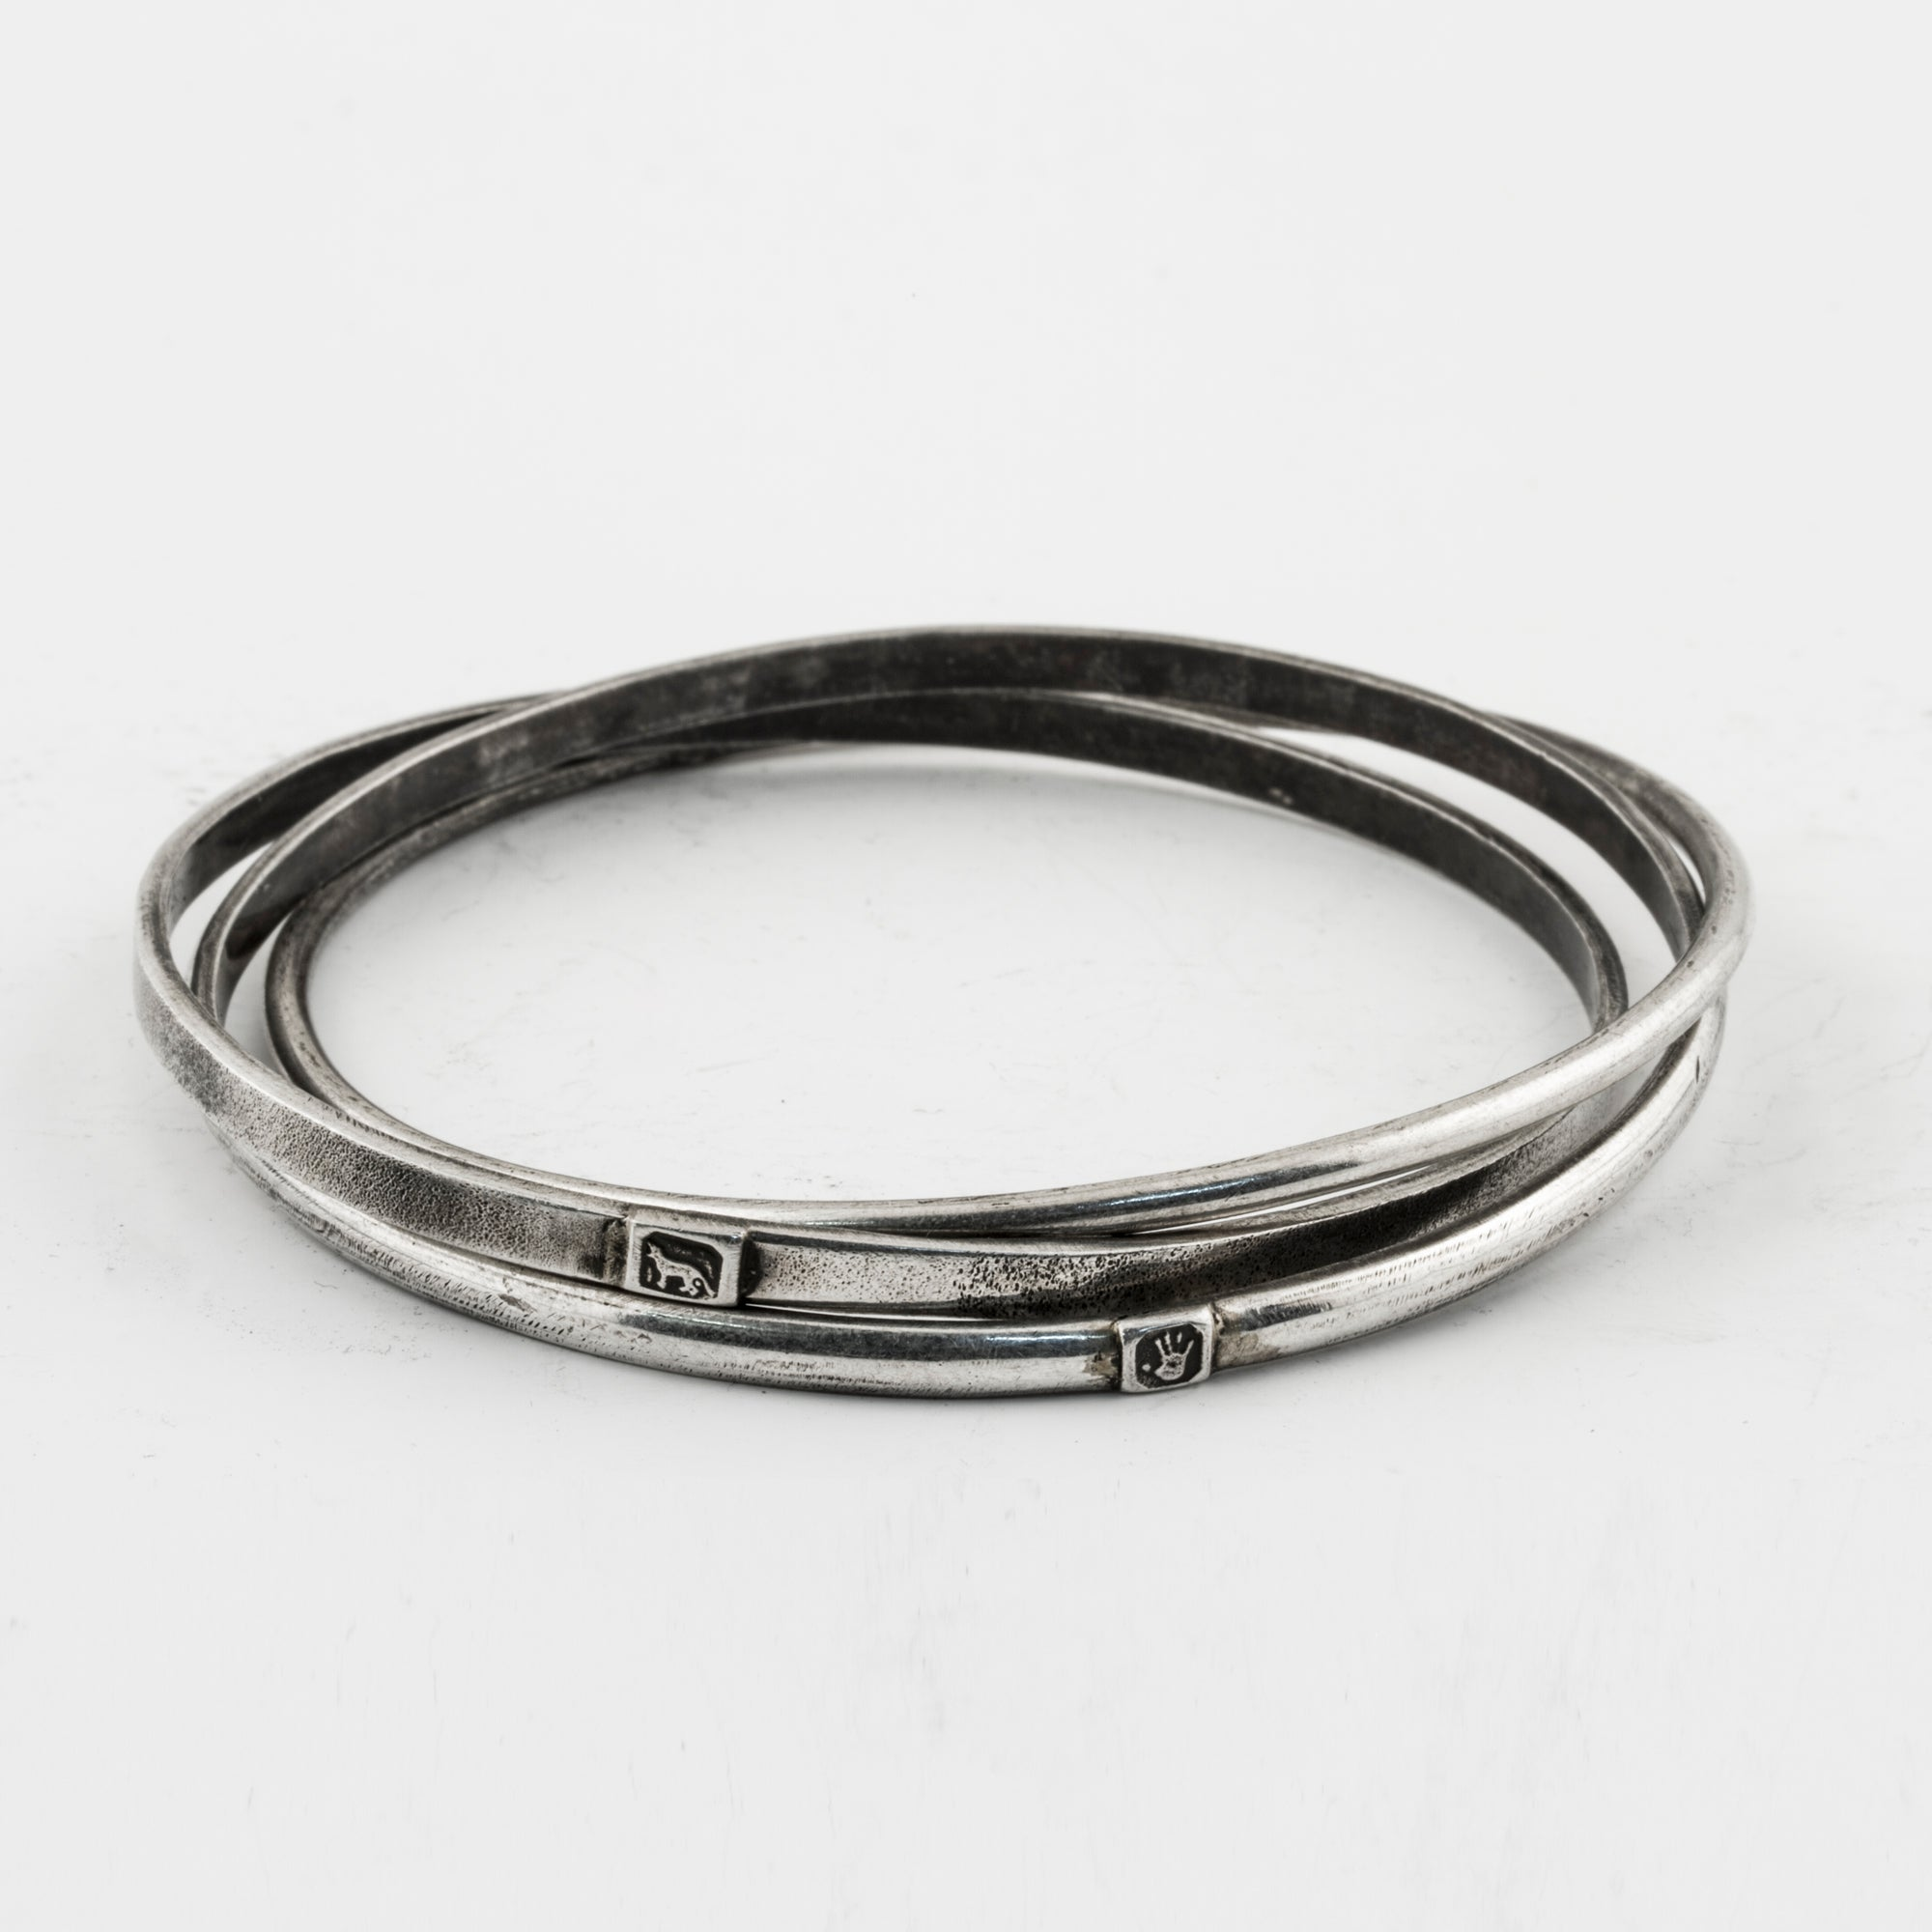 Linked Bangles with Hallmarks